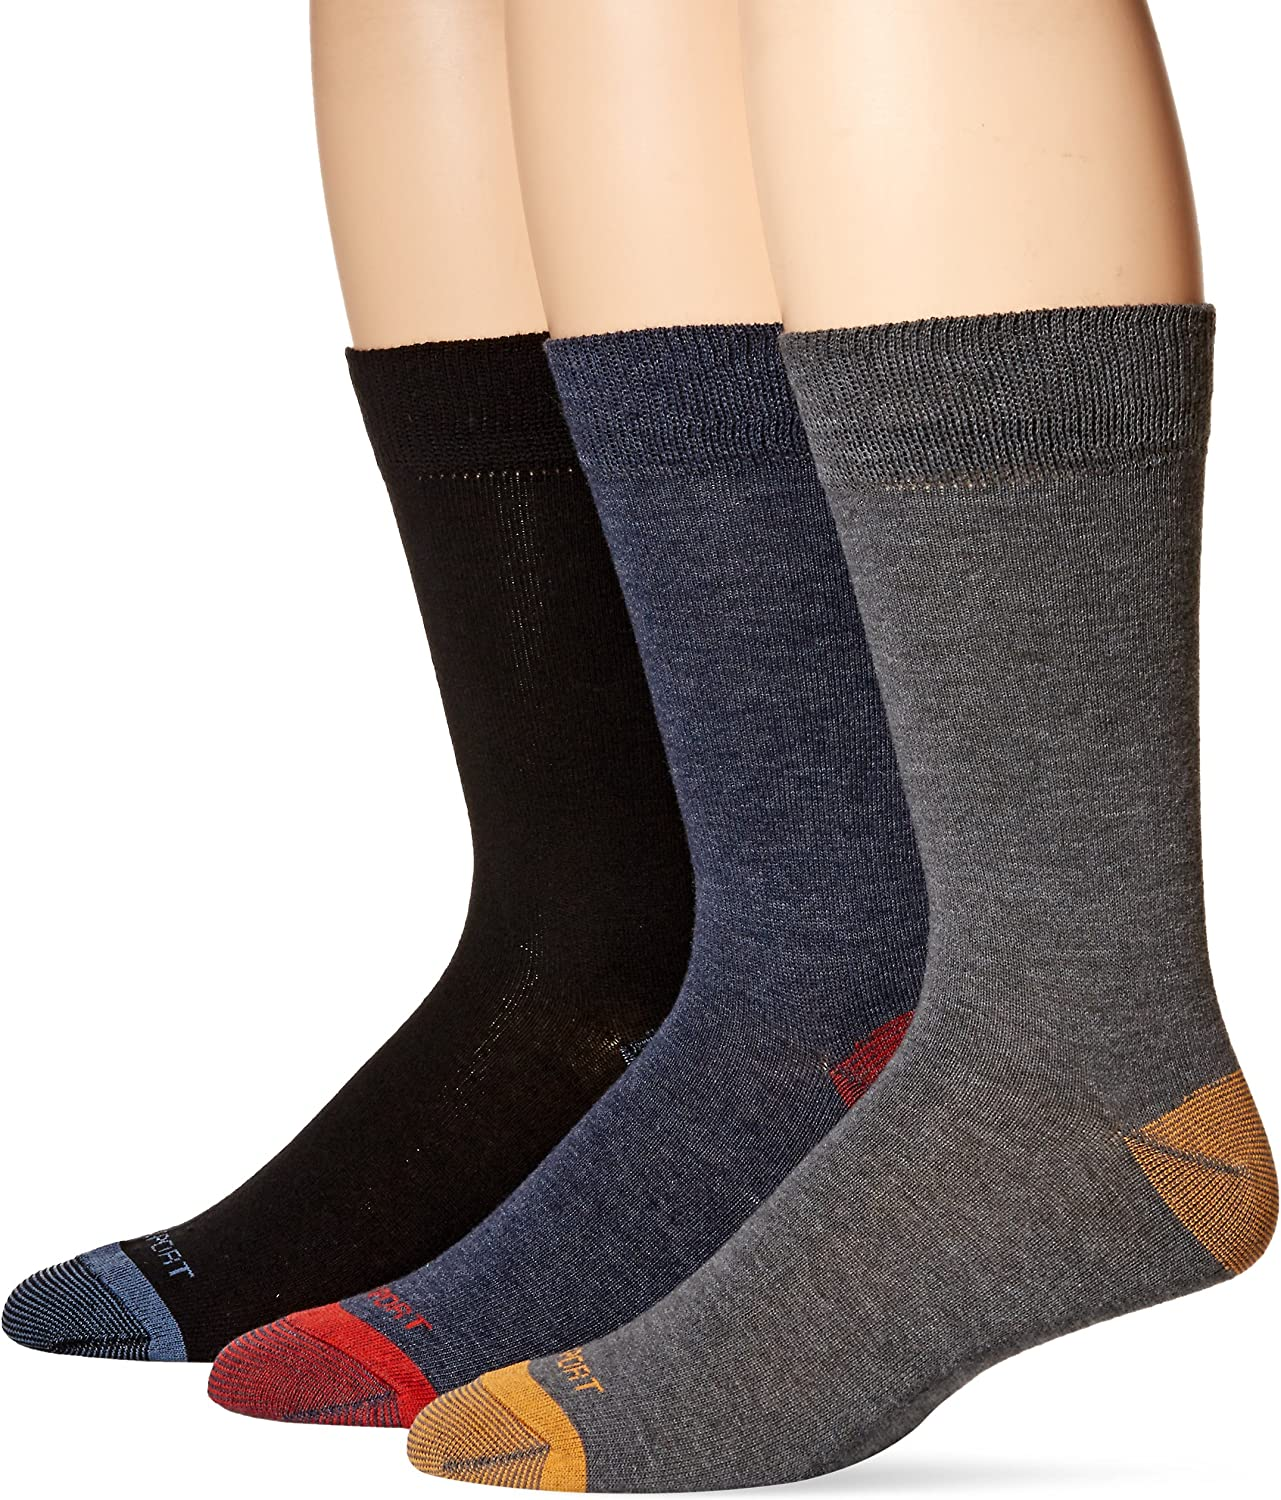 Rockport Men's Basic Flat Knit Crew Sock, Black/Charcoal/Navy Assorted, Sock Size:10-13/Shoe Size: 6-12